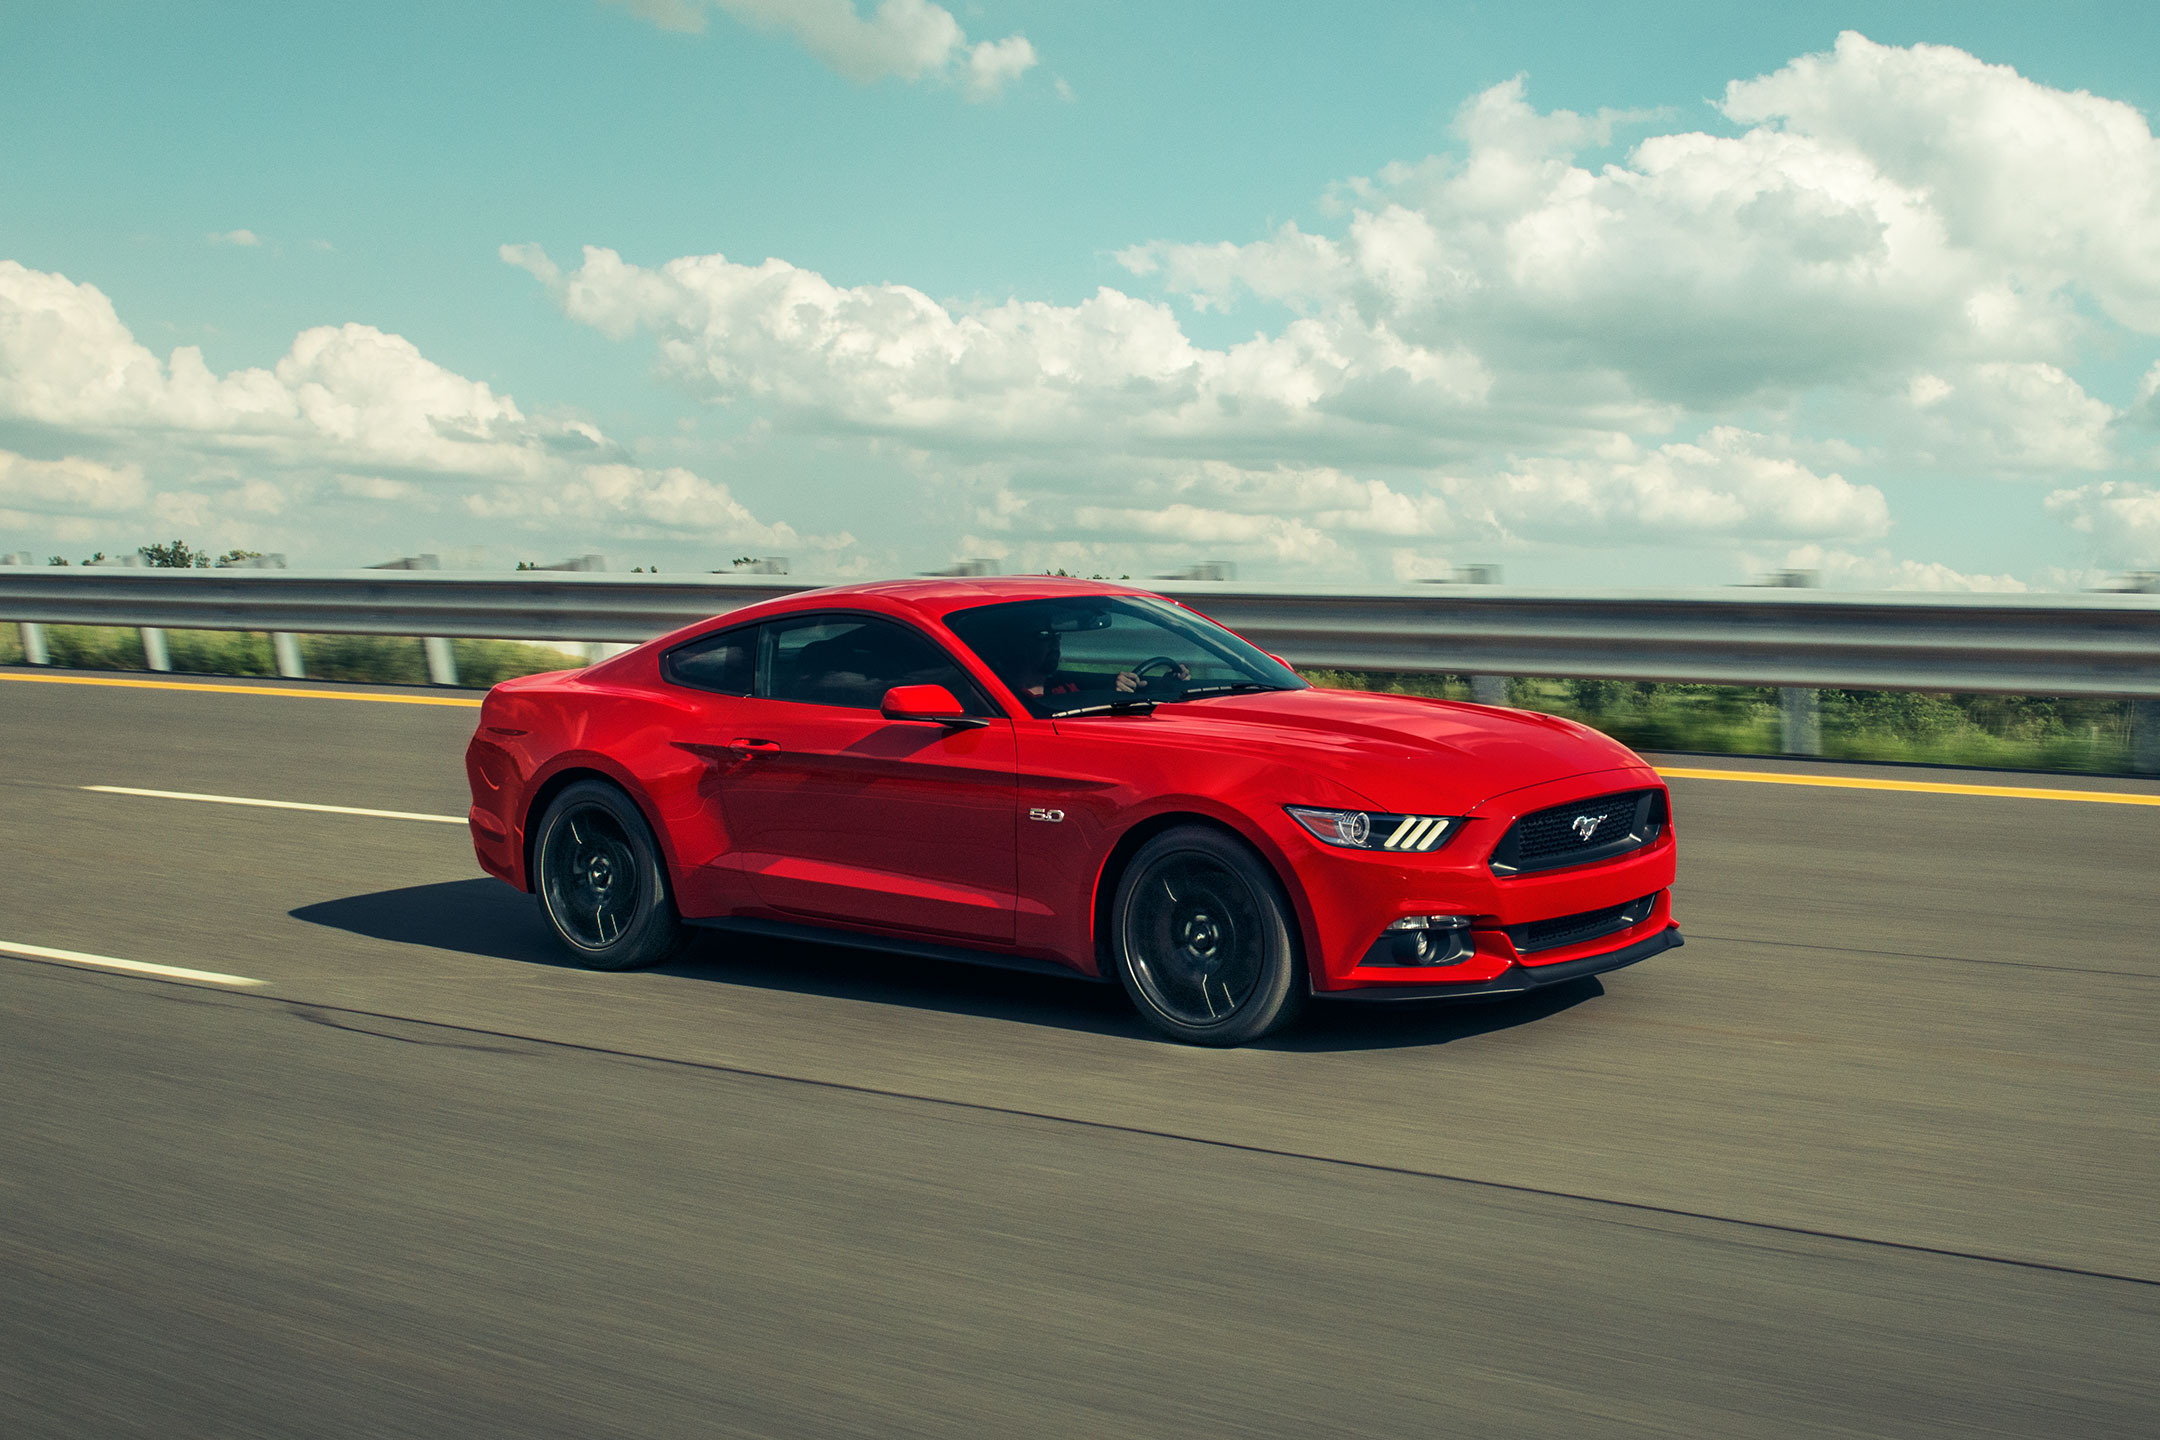 2017 Ford Mustang For Sale In Rockford Il Rock River Block. 2017 Ford Mustang For Sale In Rockford Il. Ford. Ford Mustang 3 8 Engine Rotation Diagram At Scoala.co